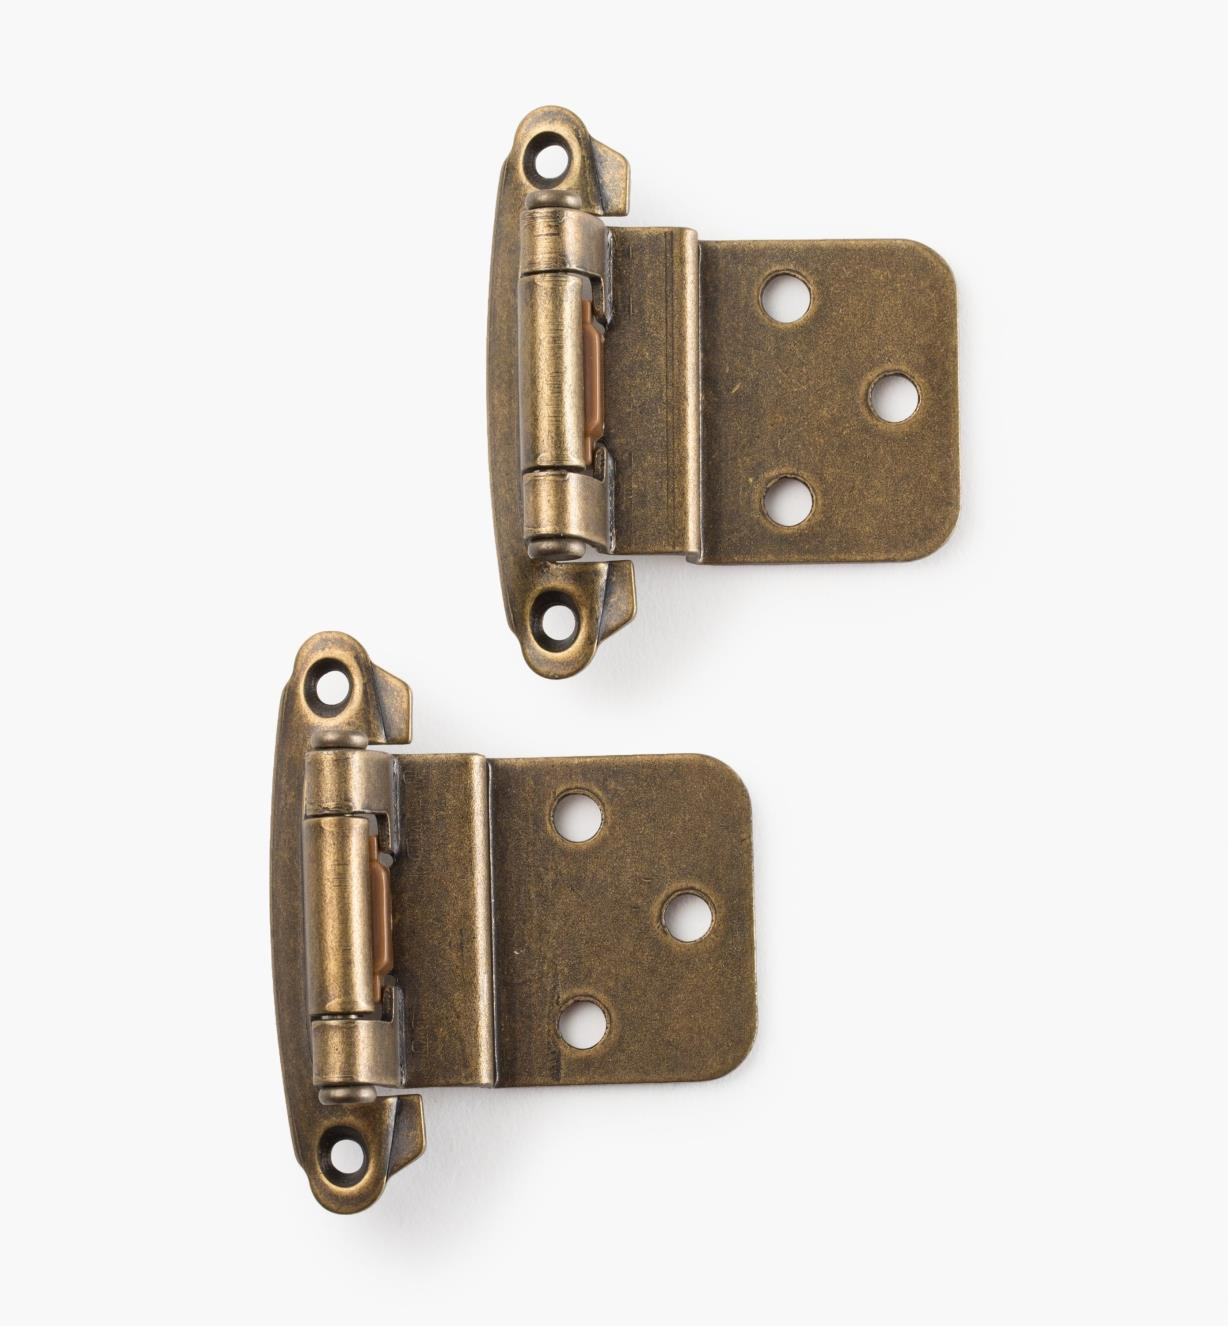 03W1207 - Belwith Surface Self-Closing Offset Hinges, Windover Antique, 10 pr.